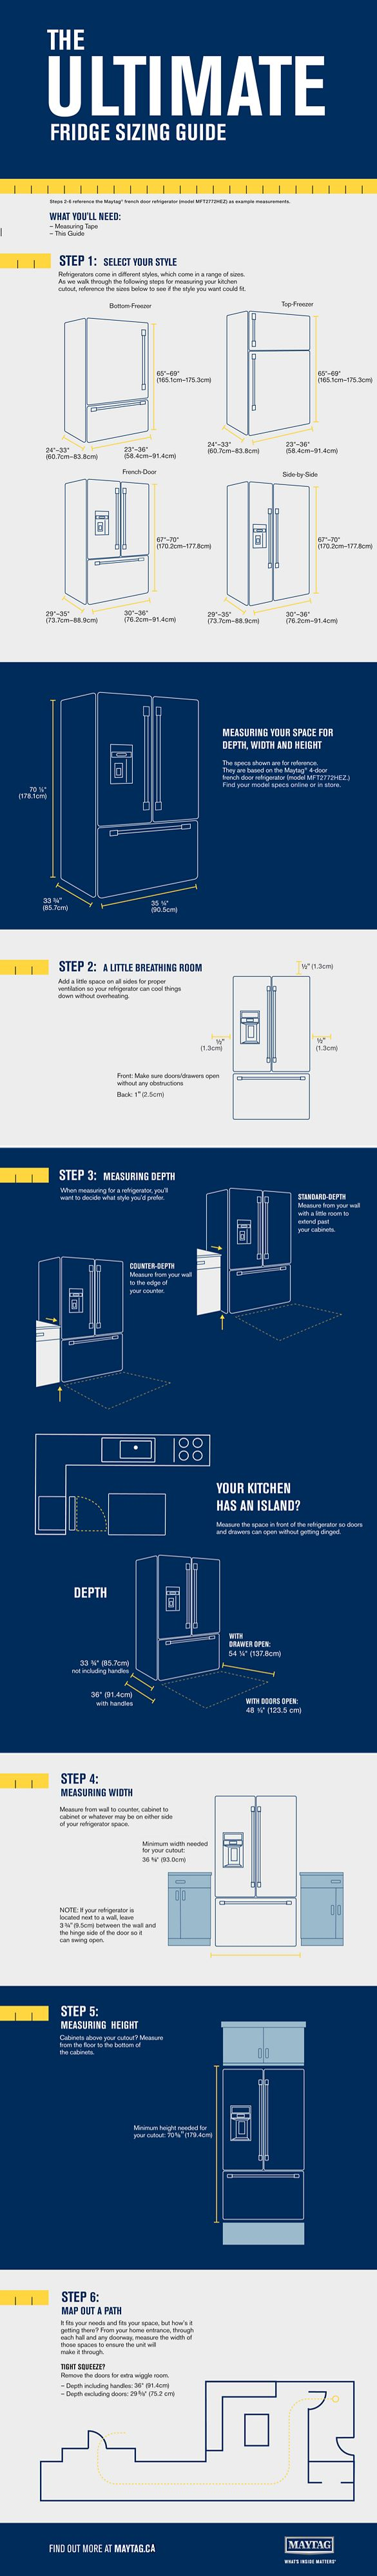 Refrigerator dimensions infographic from Maytag.